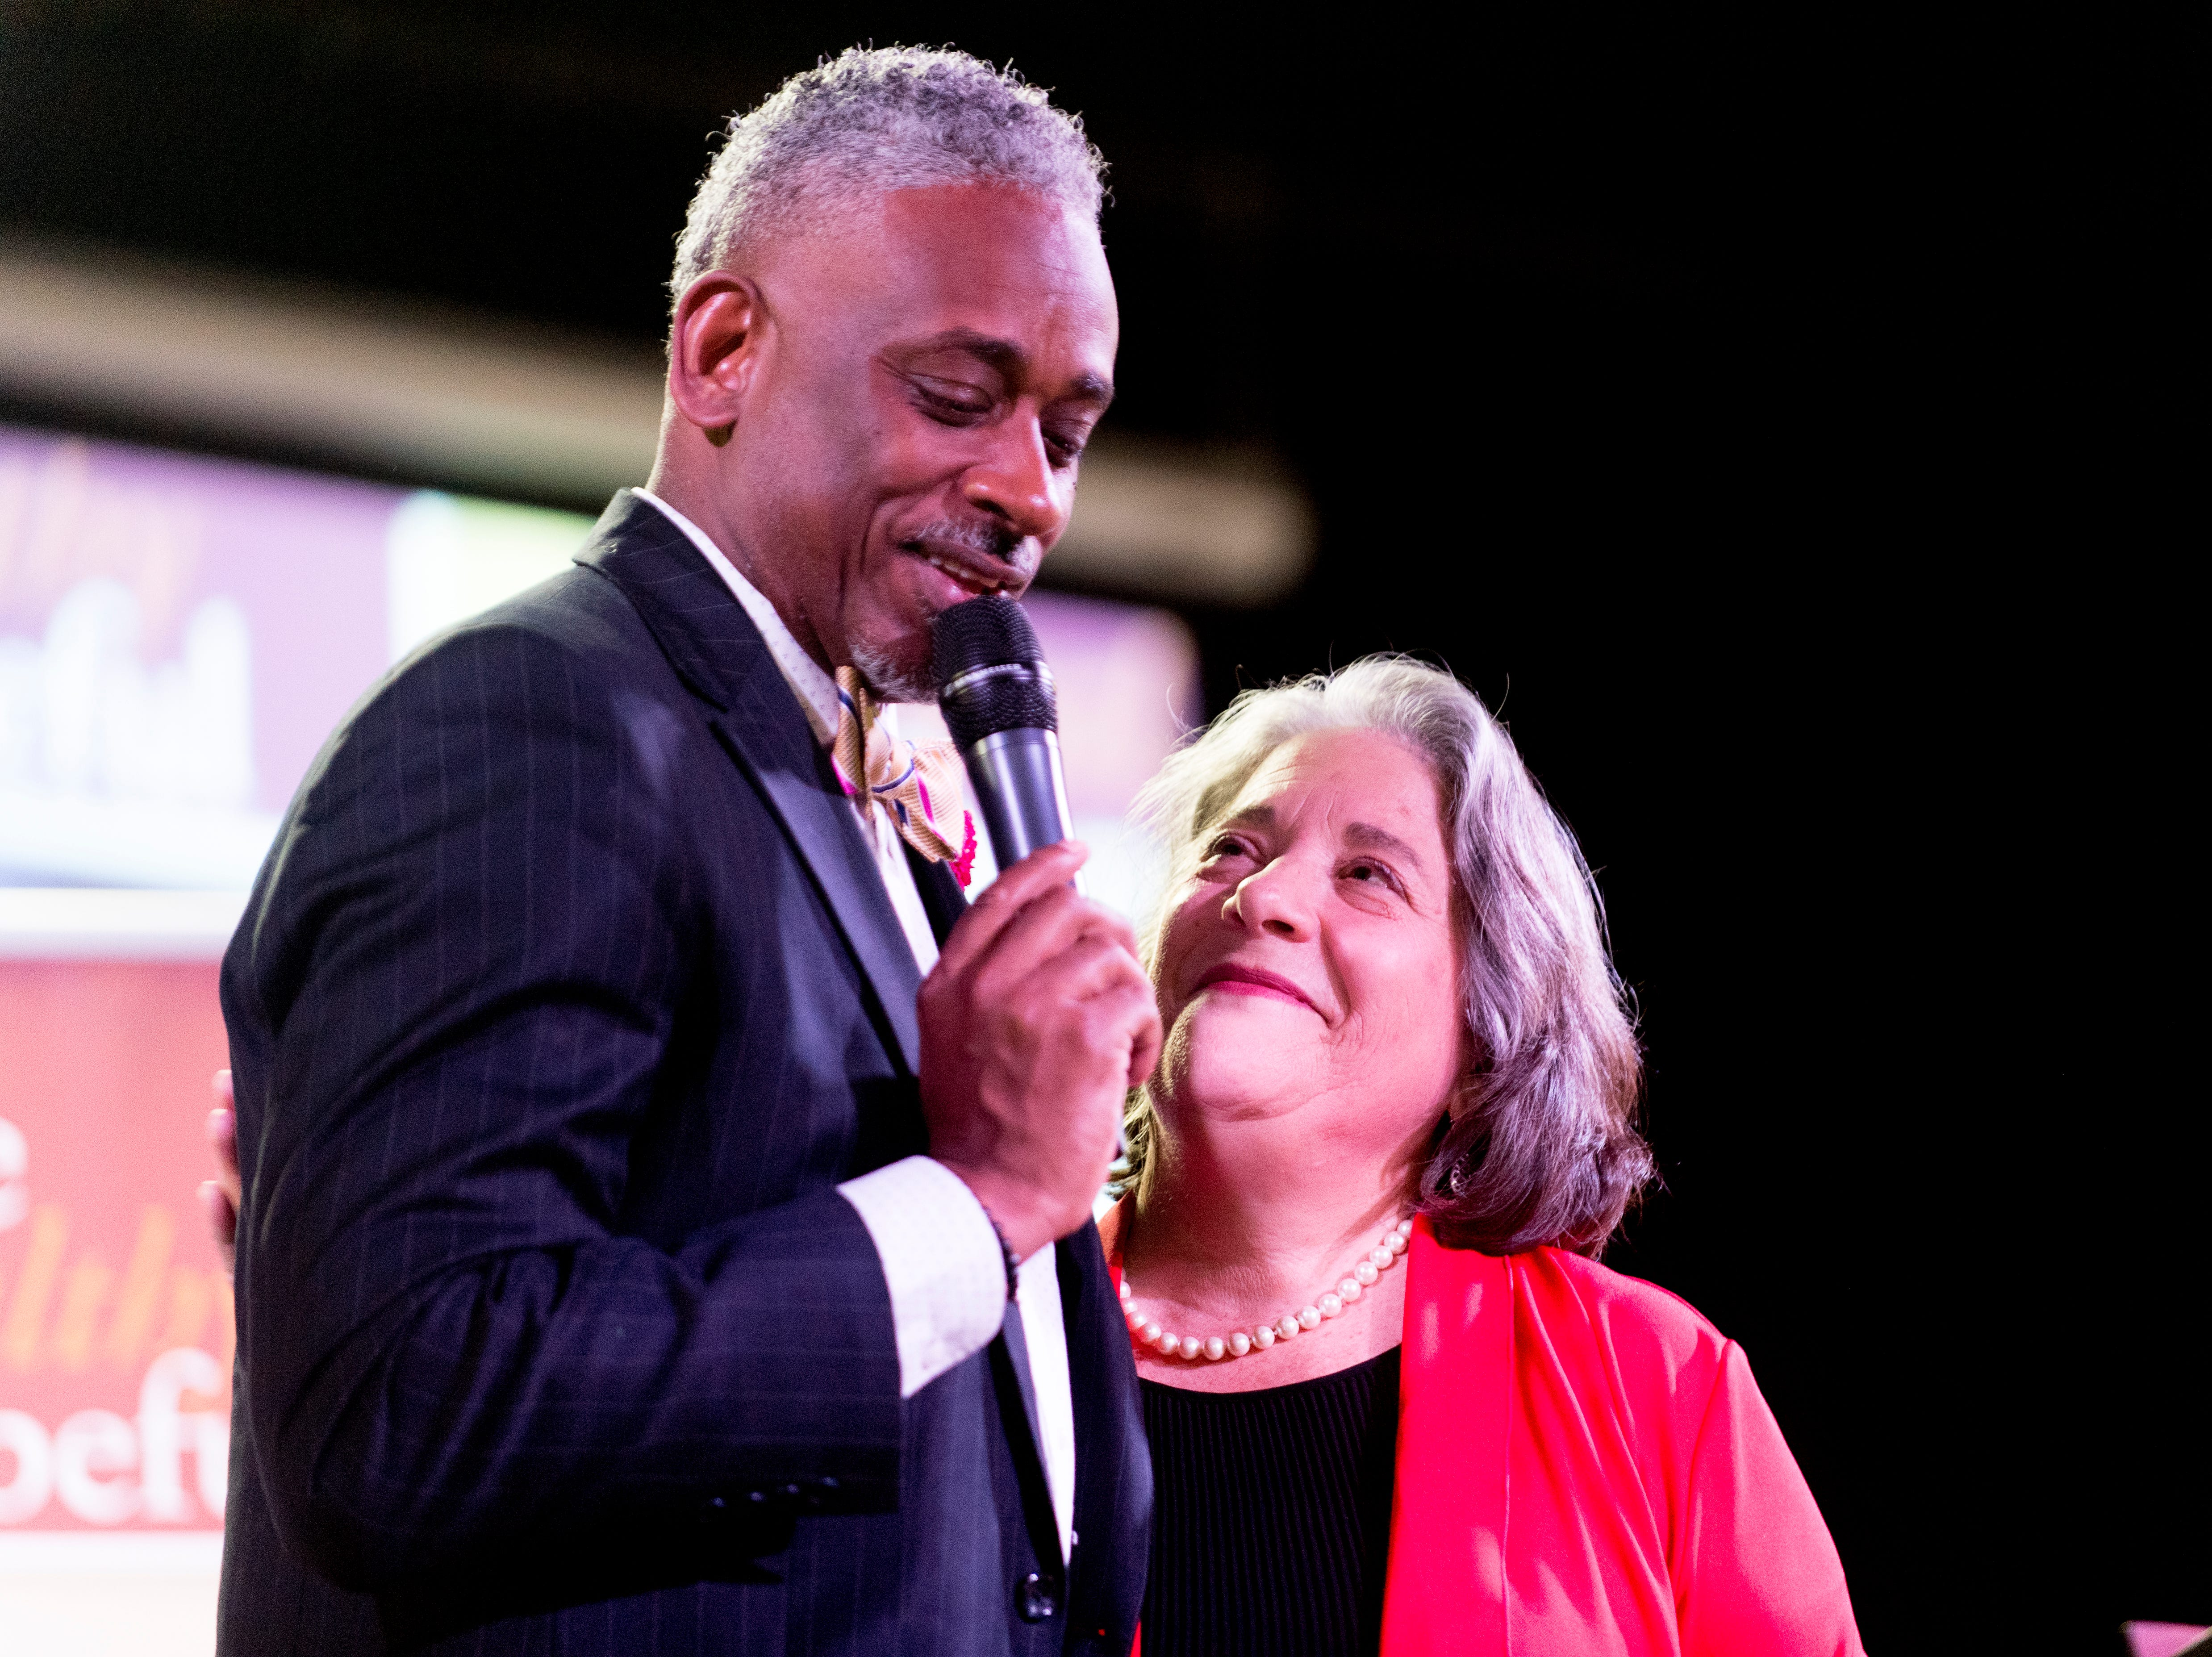 Knoxville Mayor Madeline Rogero hugs Overcoming Believers Church Pastor Daryl Arnold during the Cities Summit on Aug. 22, 2018. Mayors from all over the country gathered in Knoxville to talk about opportunities and issues facing young men of color.